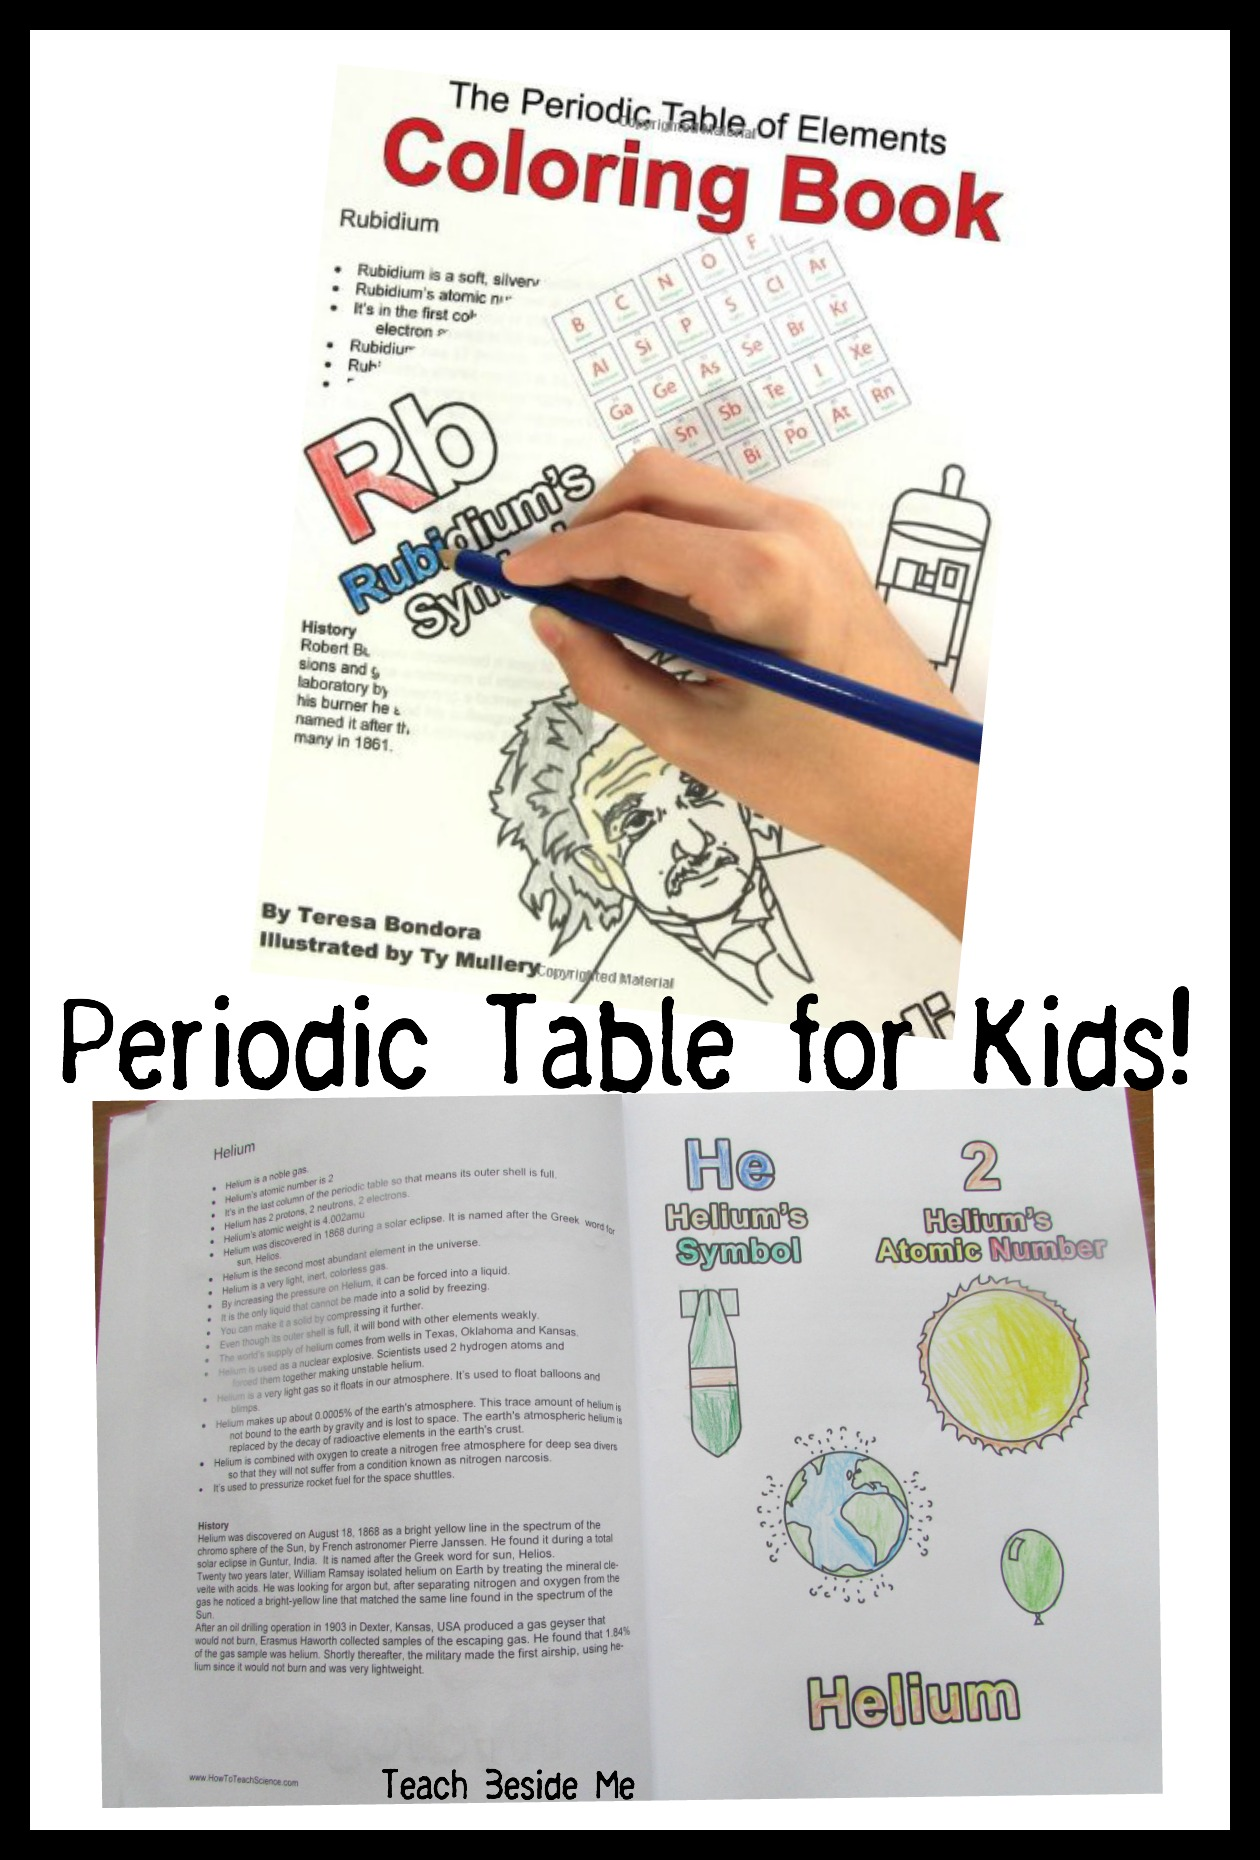 Periodic table battleship teach beside me teaching chemistry to kids learning the periodic table gamestrikefo Images